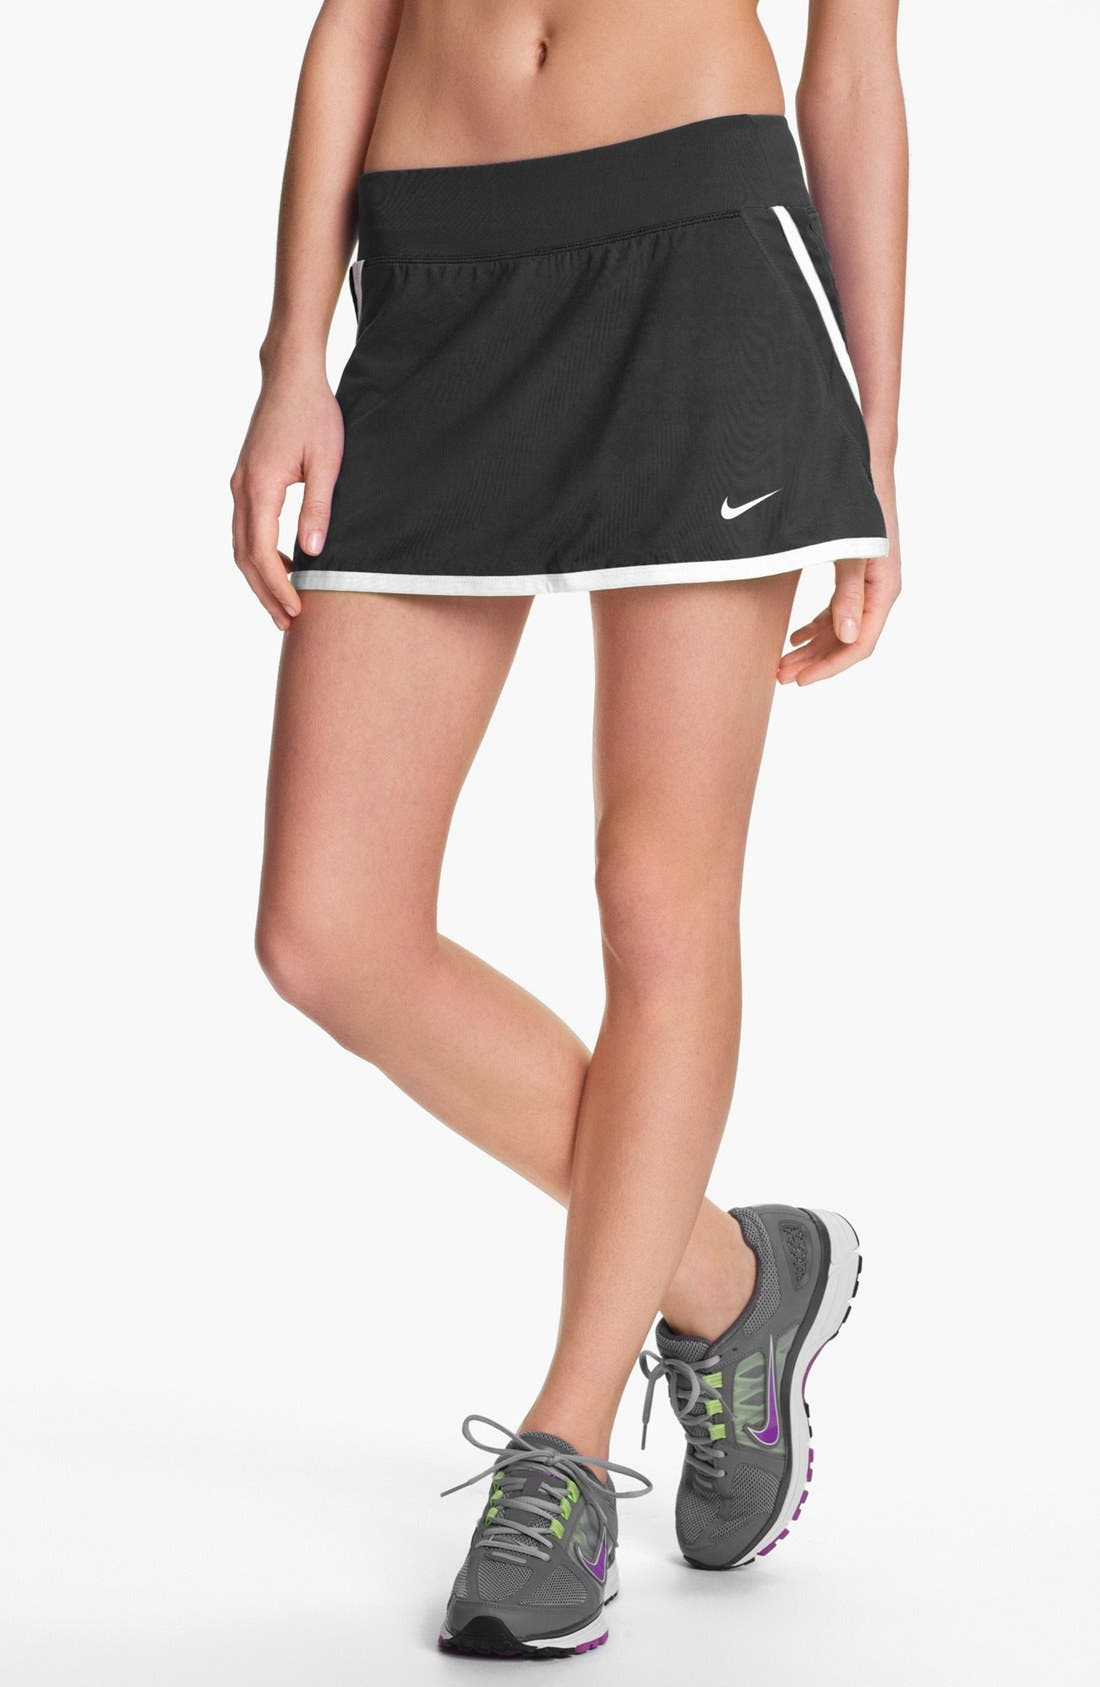 Alternate Image 1 Selected - Nike 'Power' Tennis Skirt